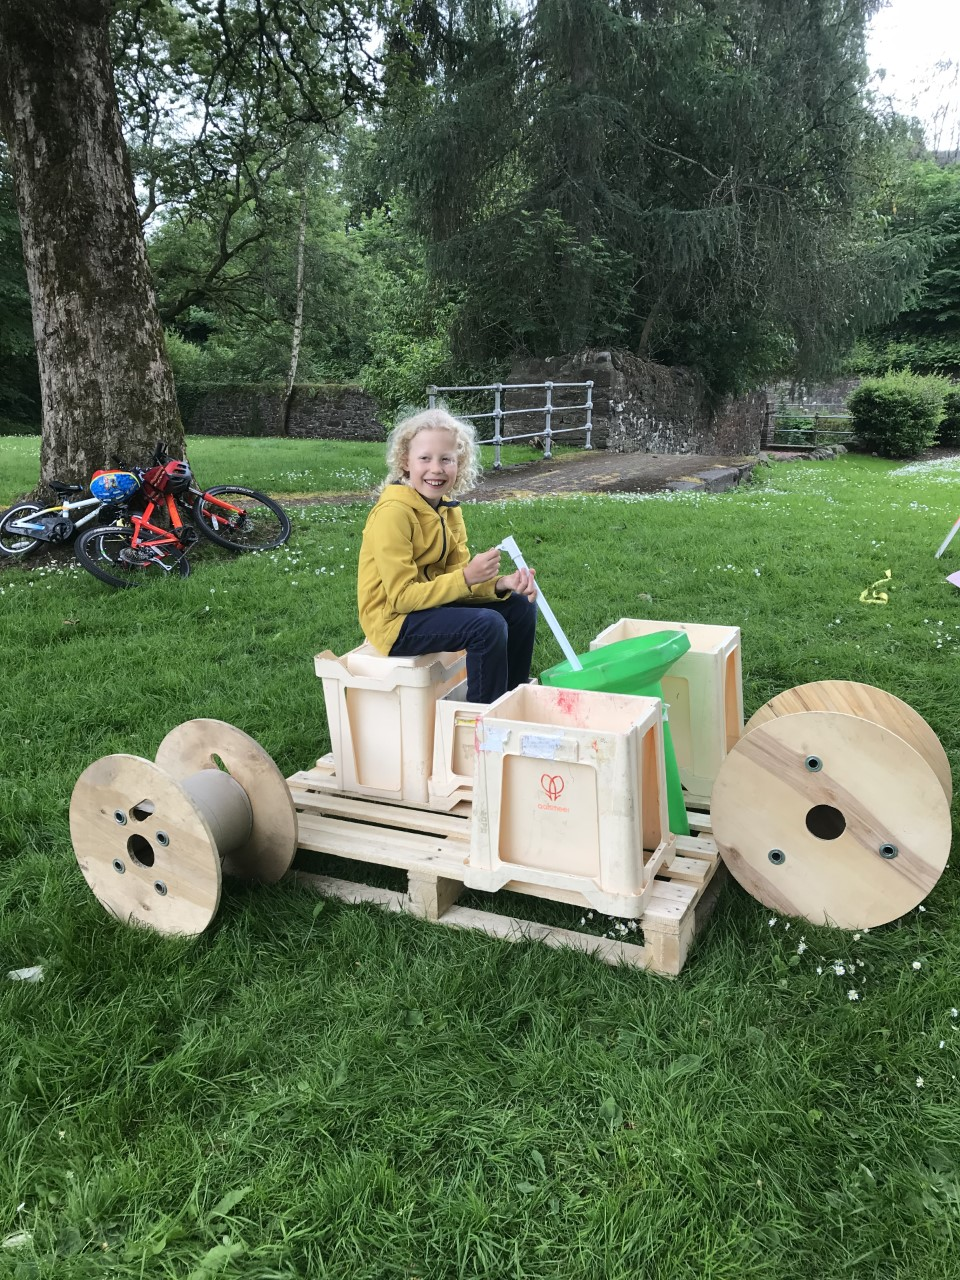 child building a vehicle out of loose parts